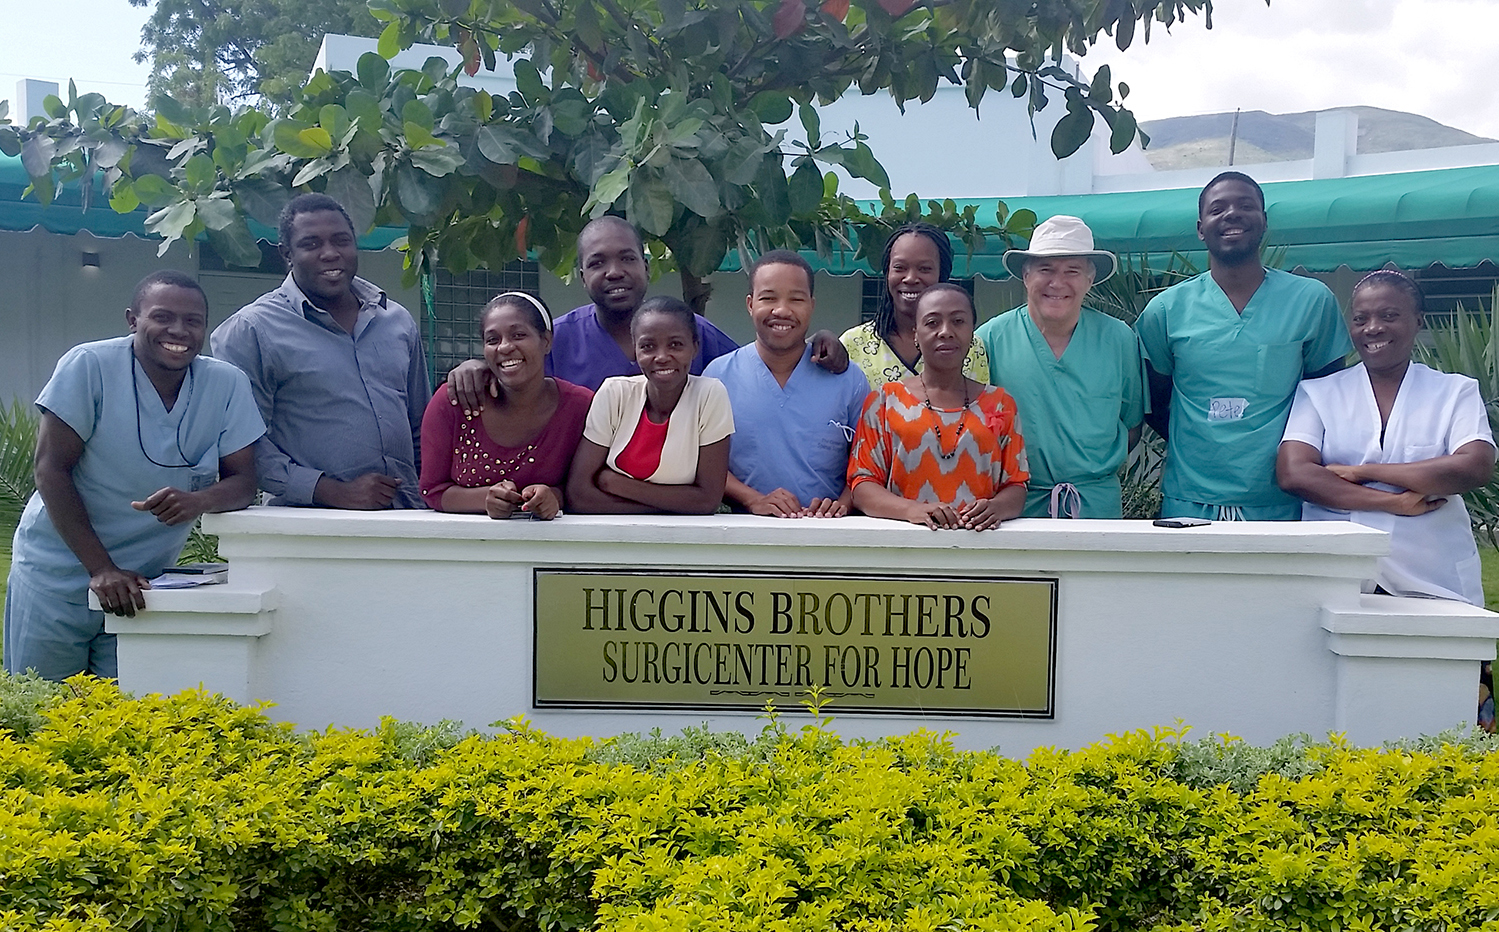 Ted Higgins '71 with the surgical staff of Higgins Brothers Surgicenter for Hope